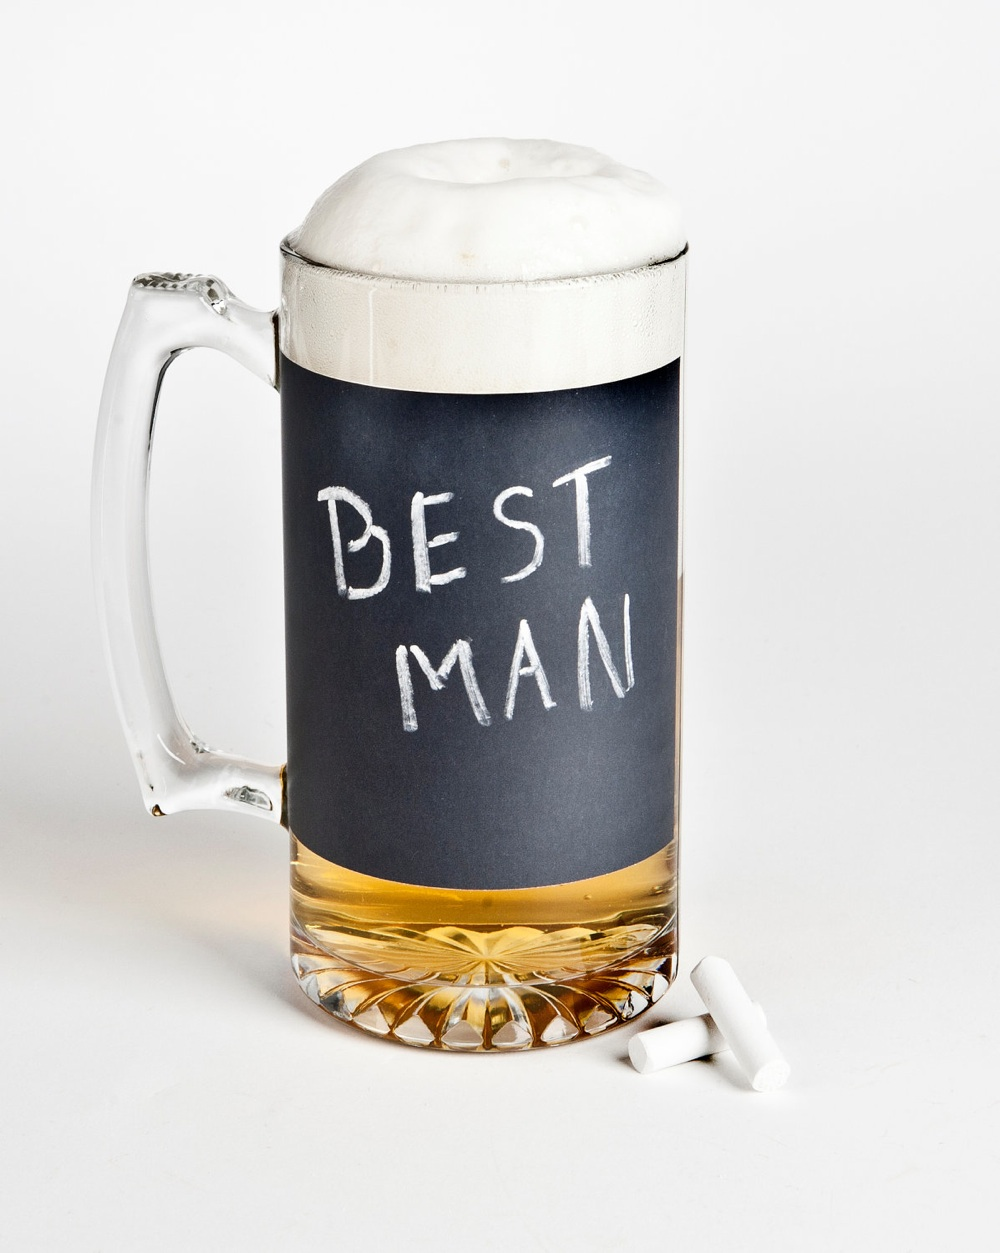 Wedding Gift Mugs Suggestions : best man wedding gifts beer mug chalkboard OneWed.com